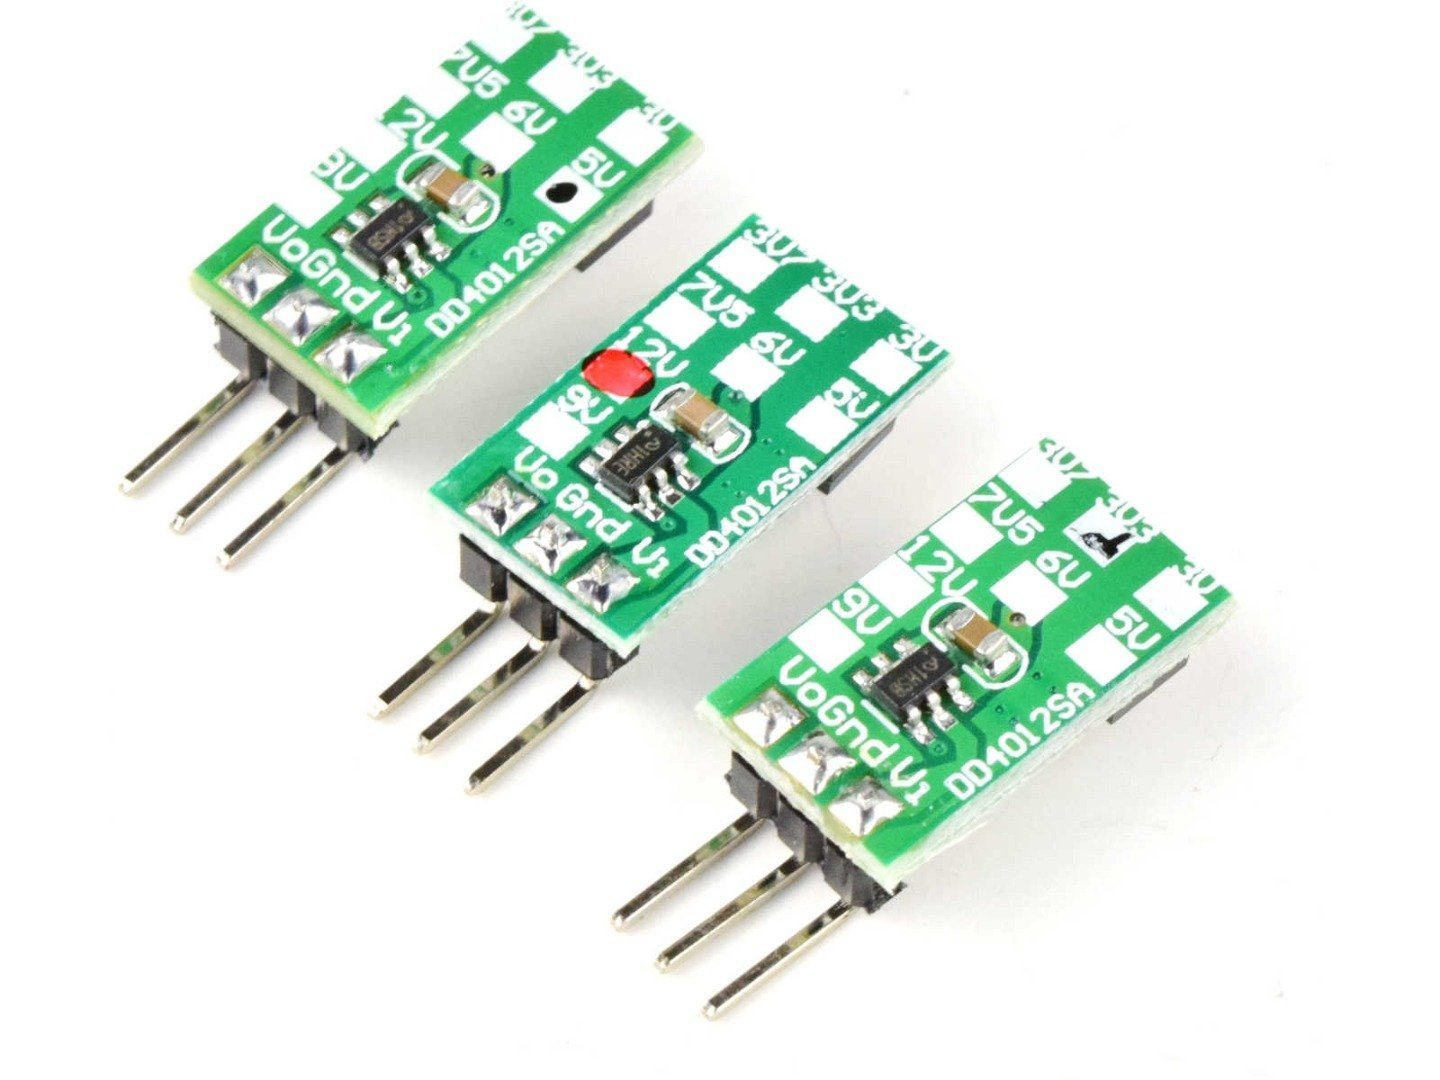 DC-DC Switching Regulator 3.3V 1A – TO-220 pinout – 78xx Replacement